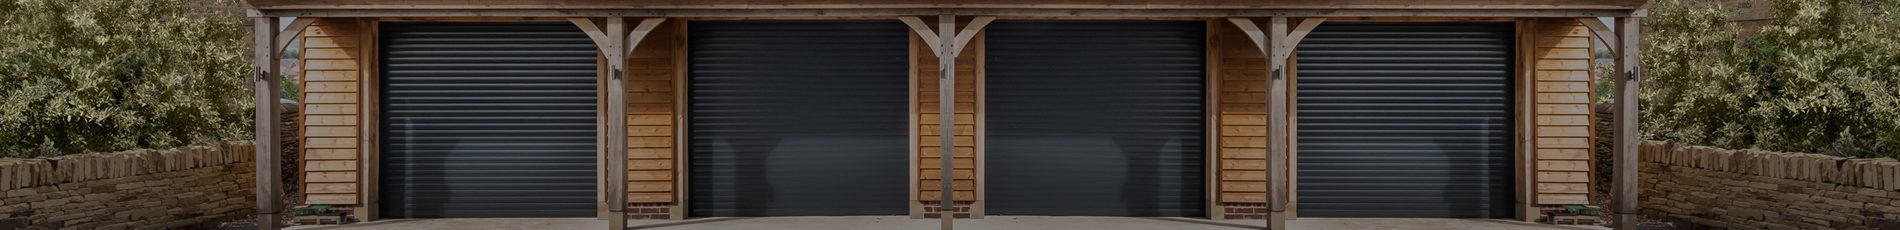 Roller Garage Doors Oswestry - Franchise, Installer and Stockists Opportunity